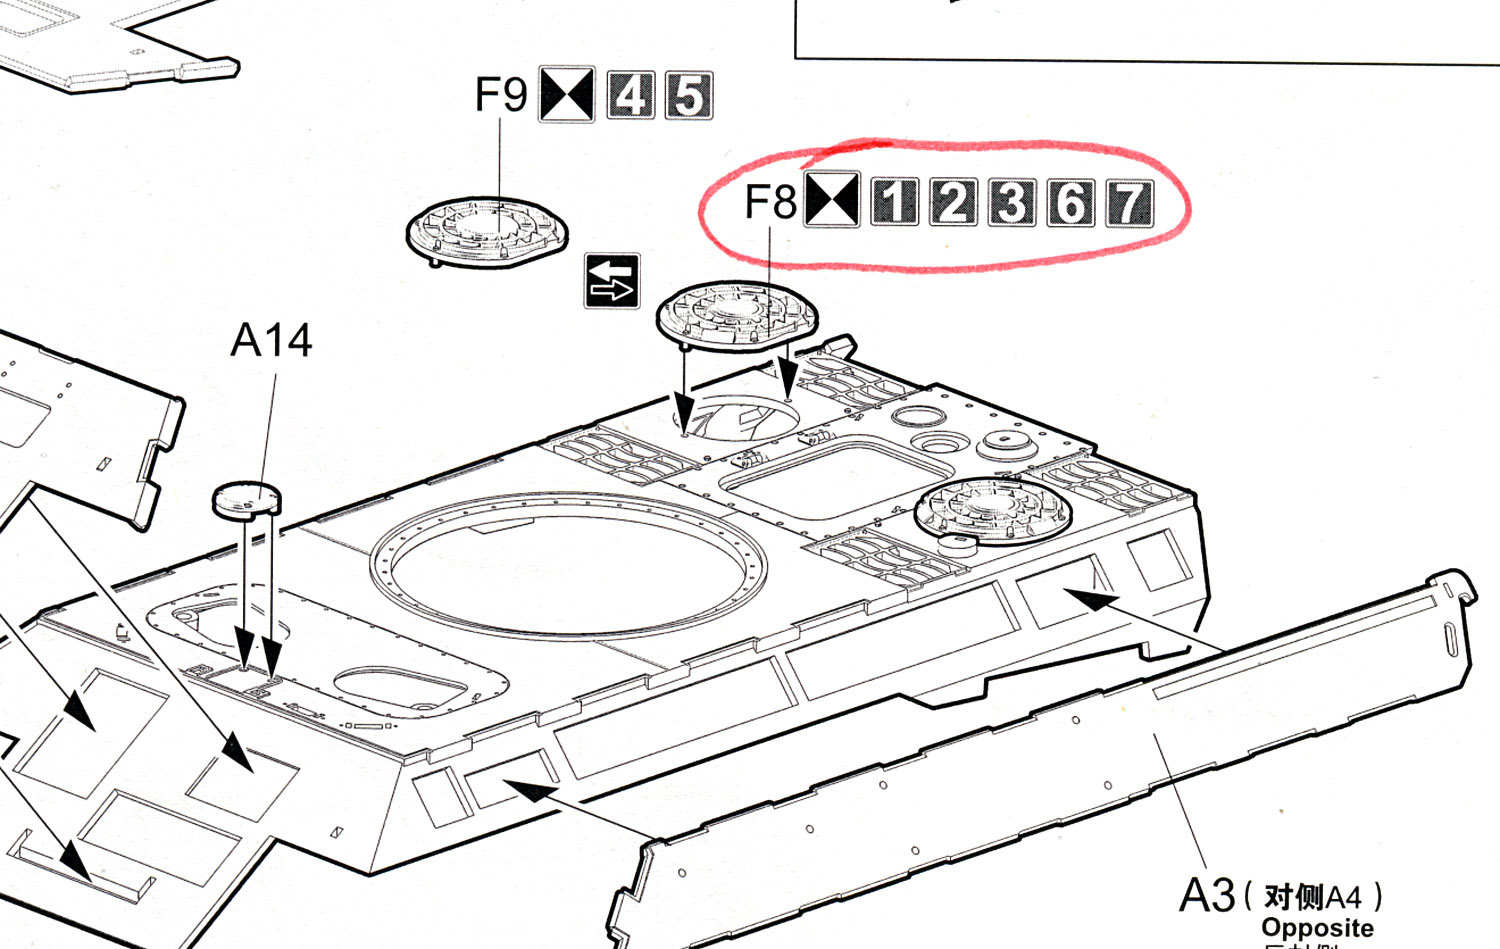 hight resolution of it s a good idea to choose the version you want to build at the start then highlight the correct parts in the instructions